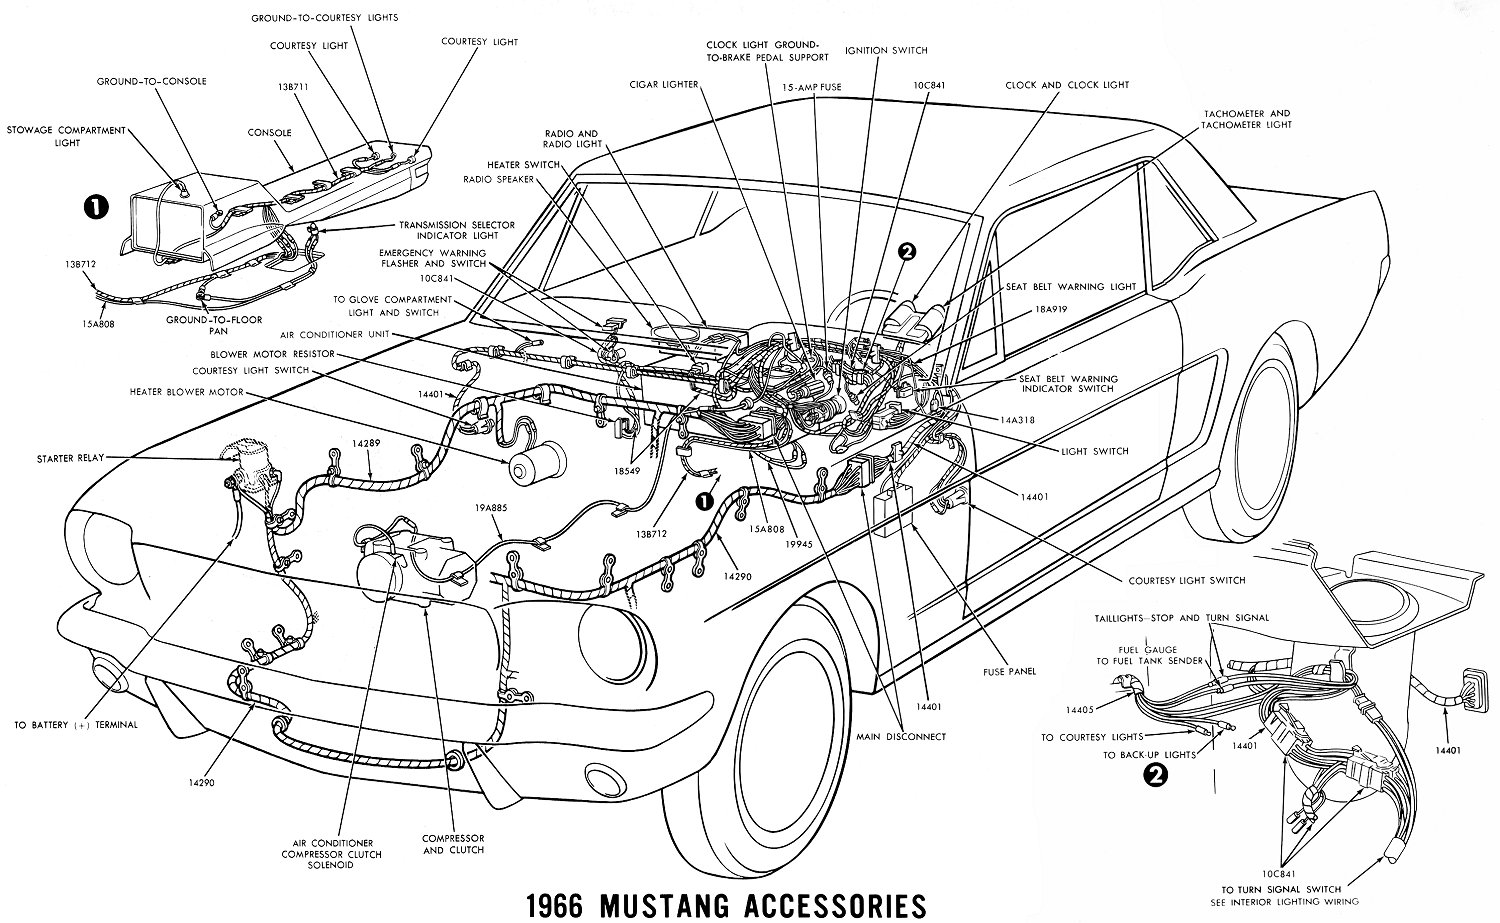 66acces 1966 mustang wiring diagrams average joe restoration 1966 mustang starter solenoid wiring diagram at bayanpartner.co